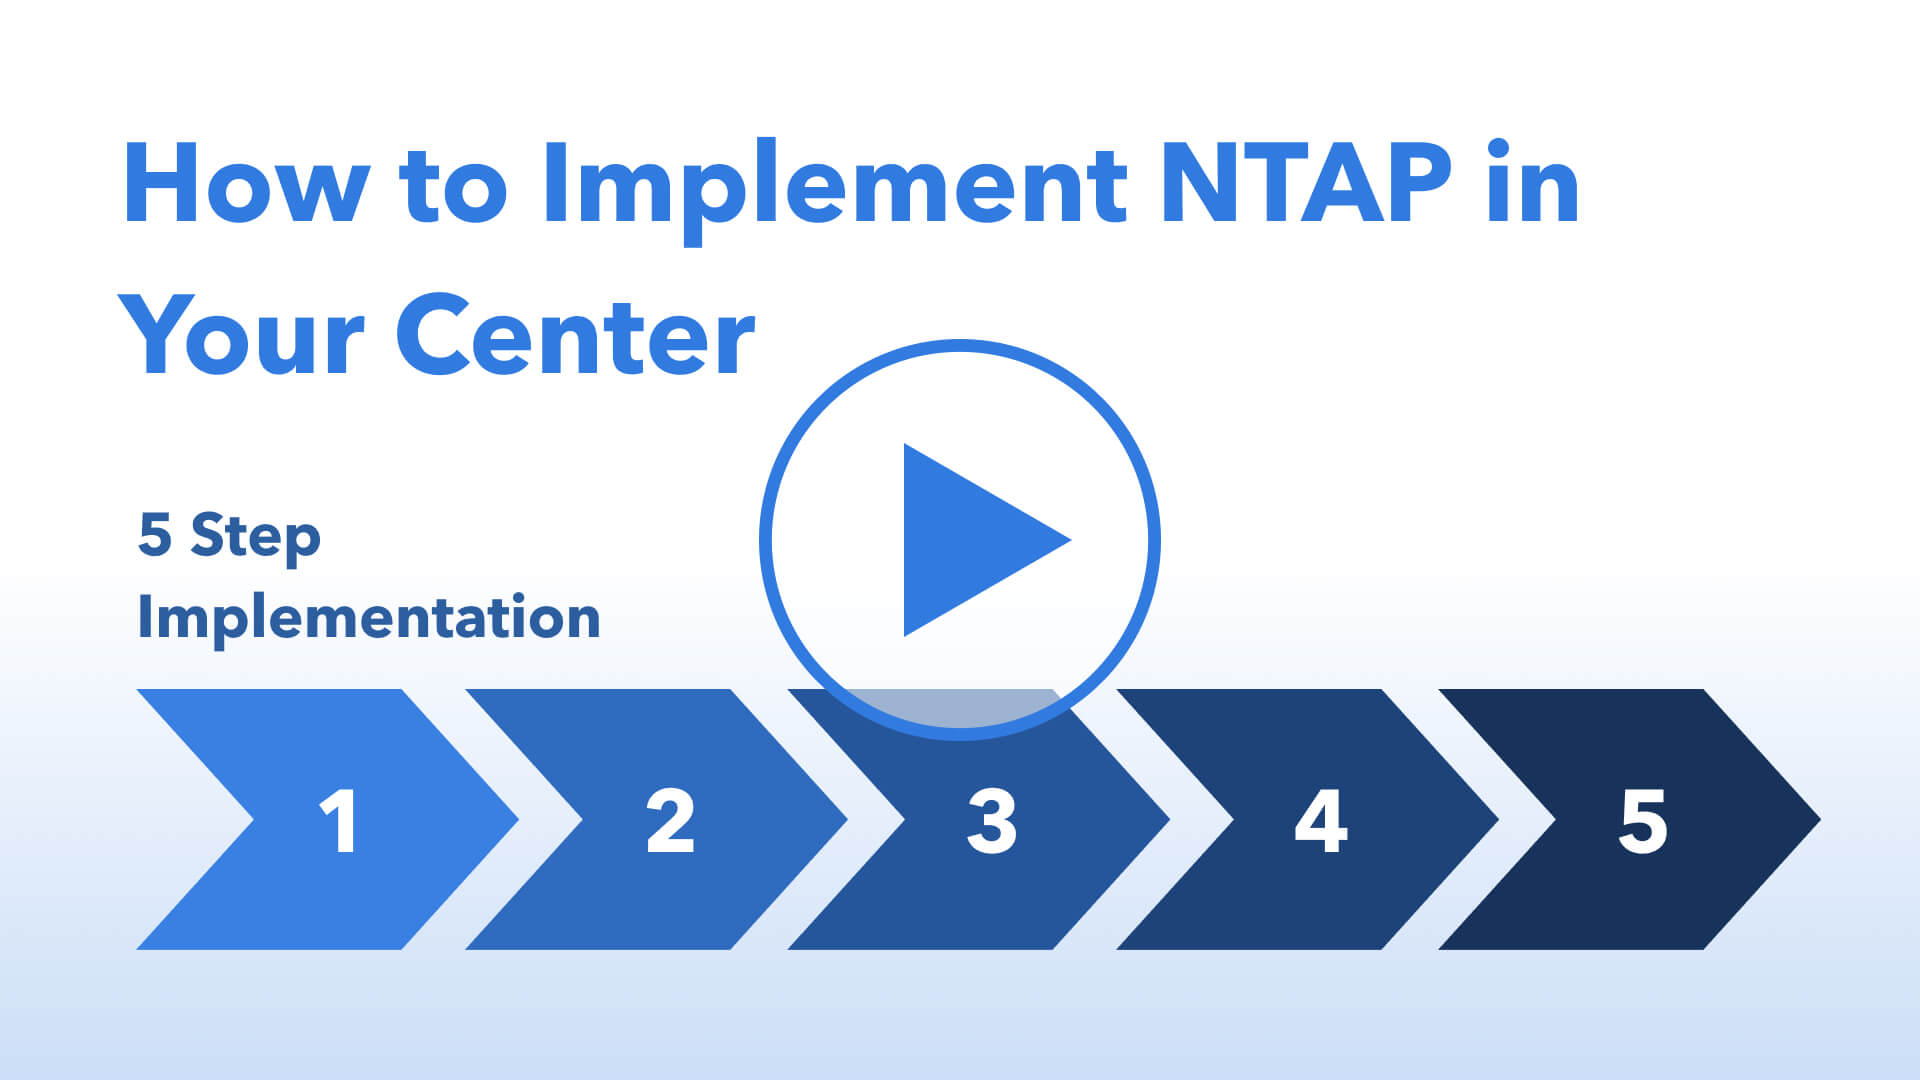 How to Implement NTAP in Your Center